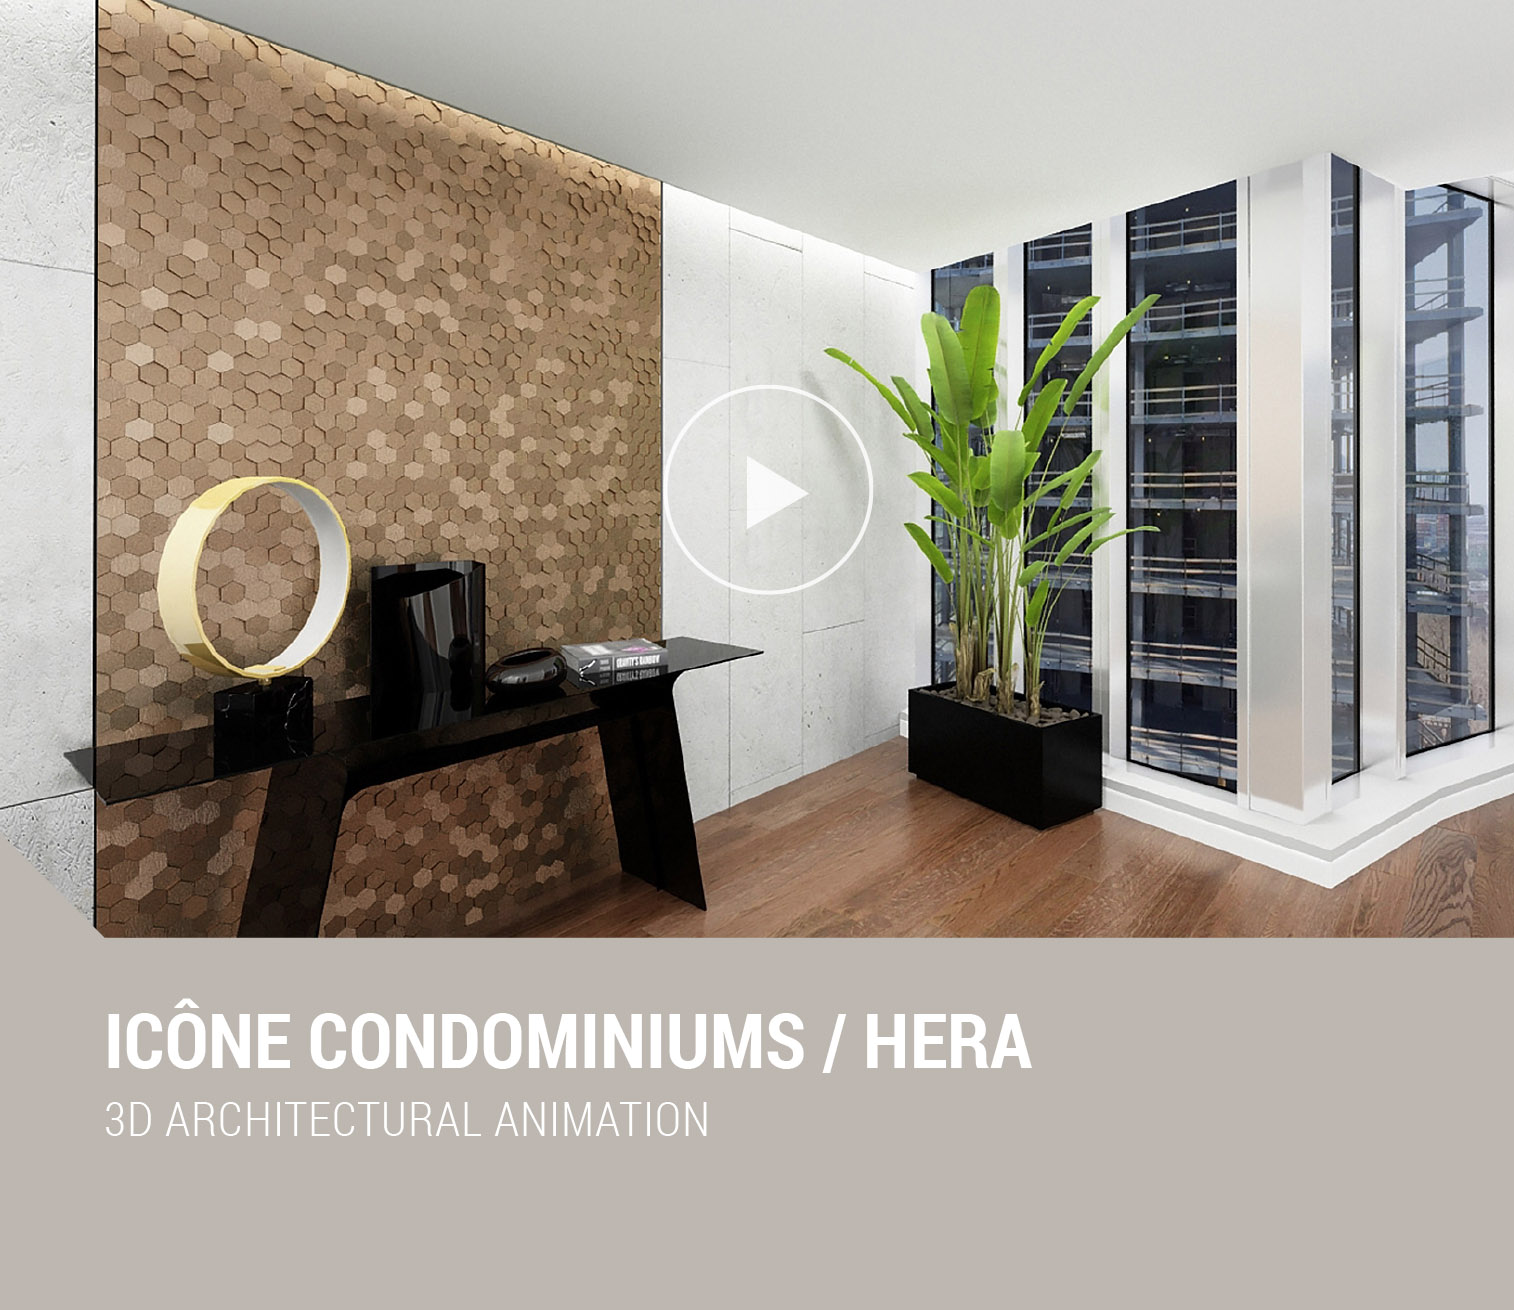 Schema Dimitra Chrona designer, creative director, architectural, 3D visualization, 3D Rendering, branding websites, digital, graphic design, interior design, real estate, luxury property, staging, museum, virtual, art, brochures, exhibitions, logotype, logo, Canada Quebec Montreal Athens Greece schema design icone condominiums hera video small.jpg